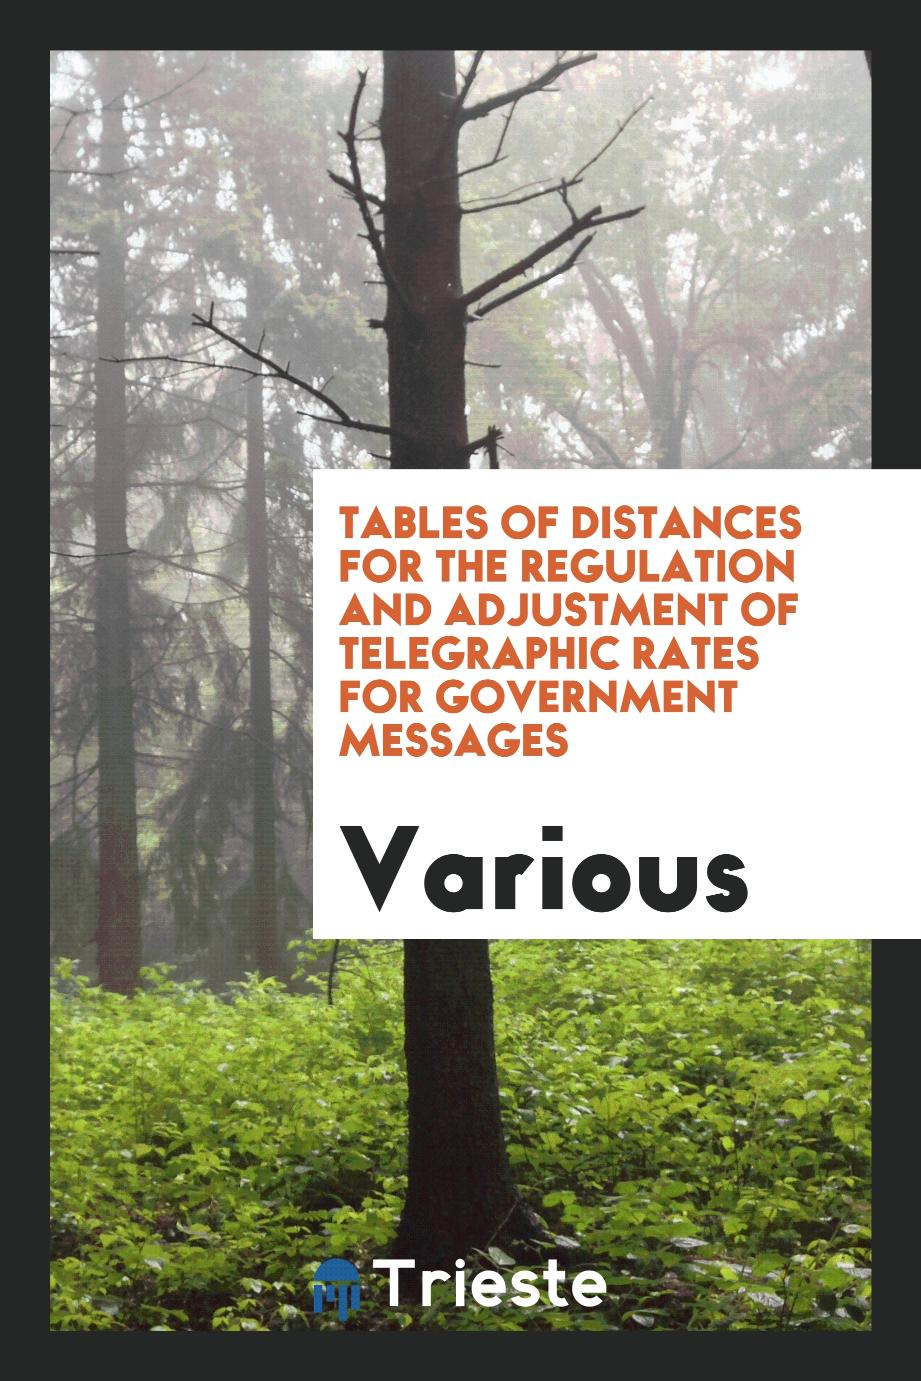 Tables of Distances for the Regulation and Adjustment of Telegraphic Rates for Government Messages